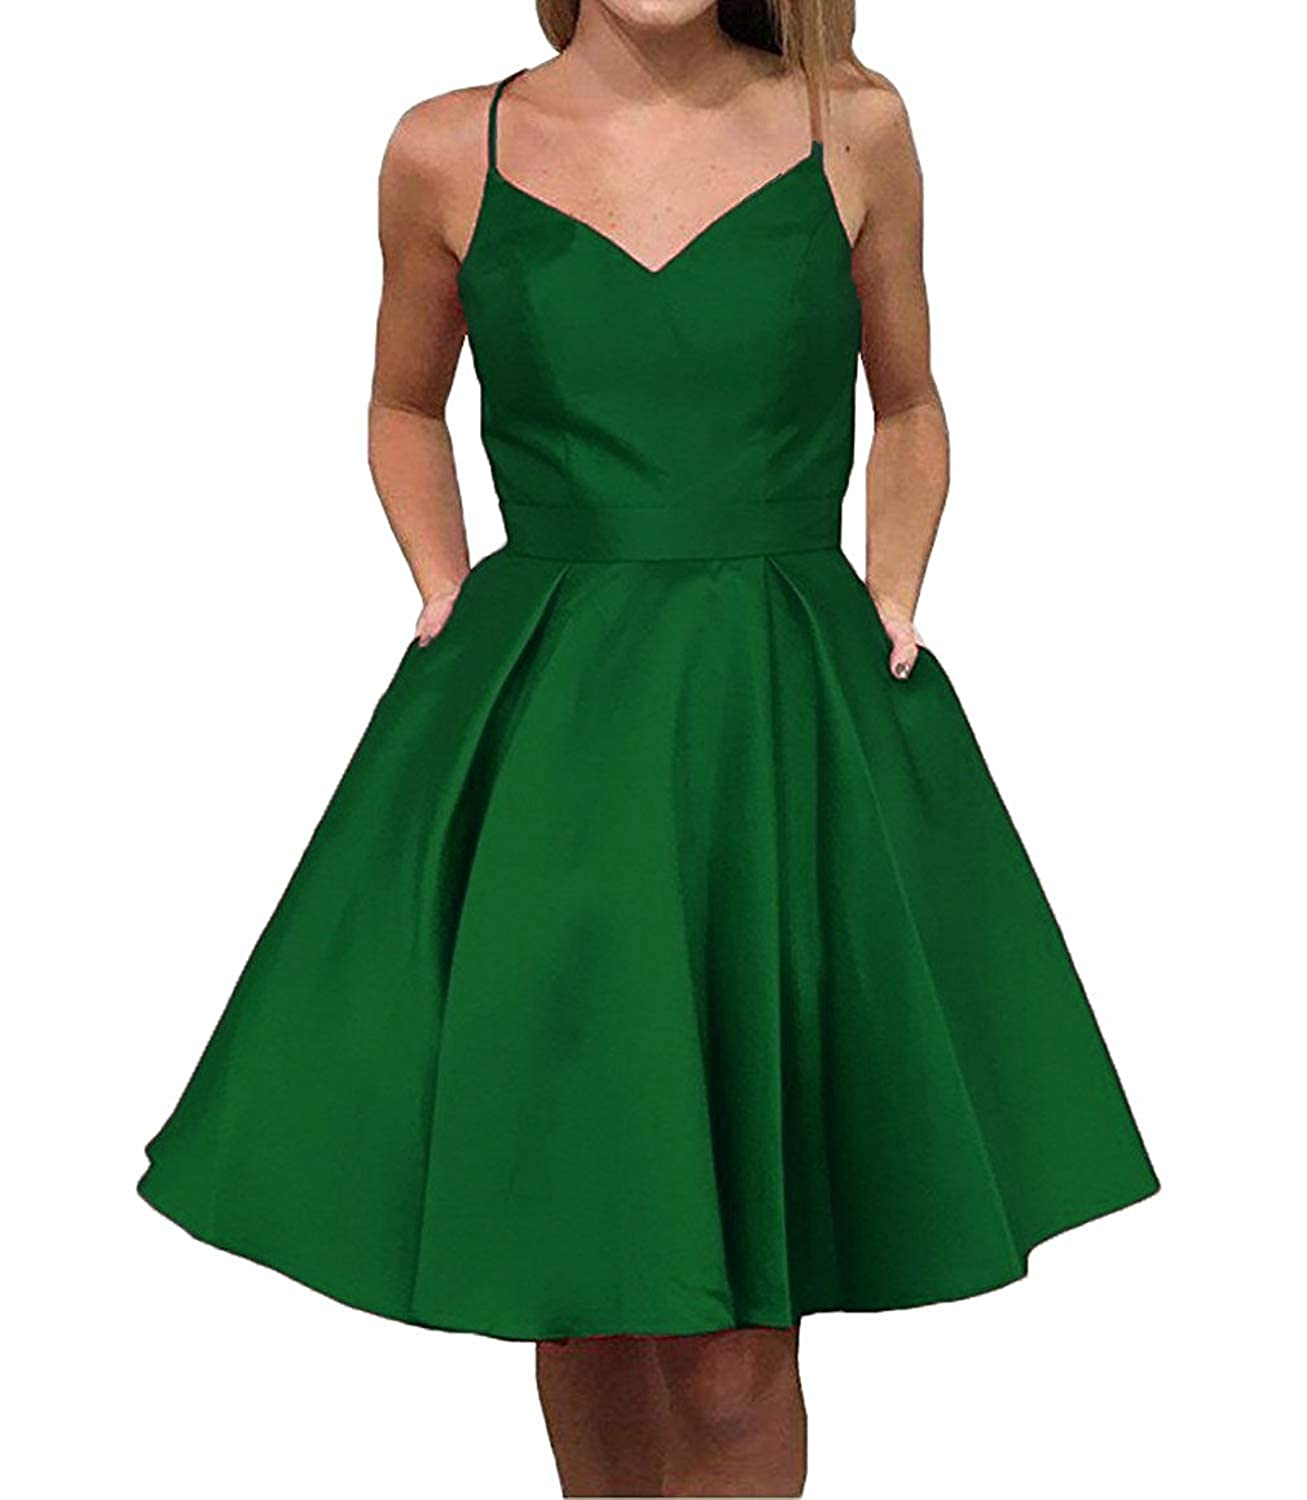 Green JQLD Cute Straps Knee Length Homecoming Dresses Short Sleeveless Party Cocktail Dress with Pockets